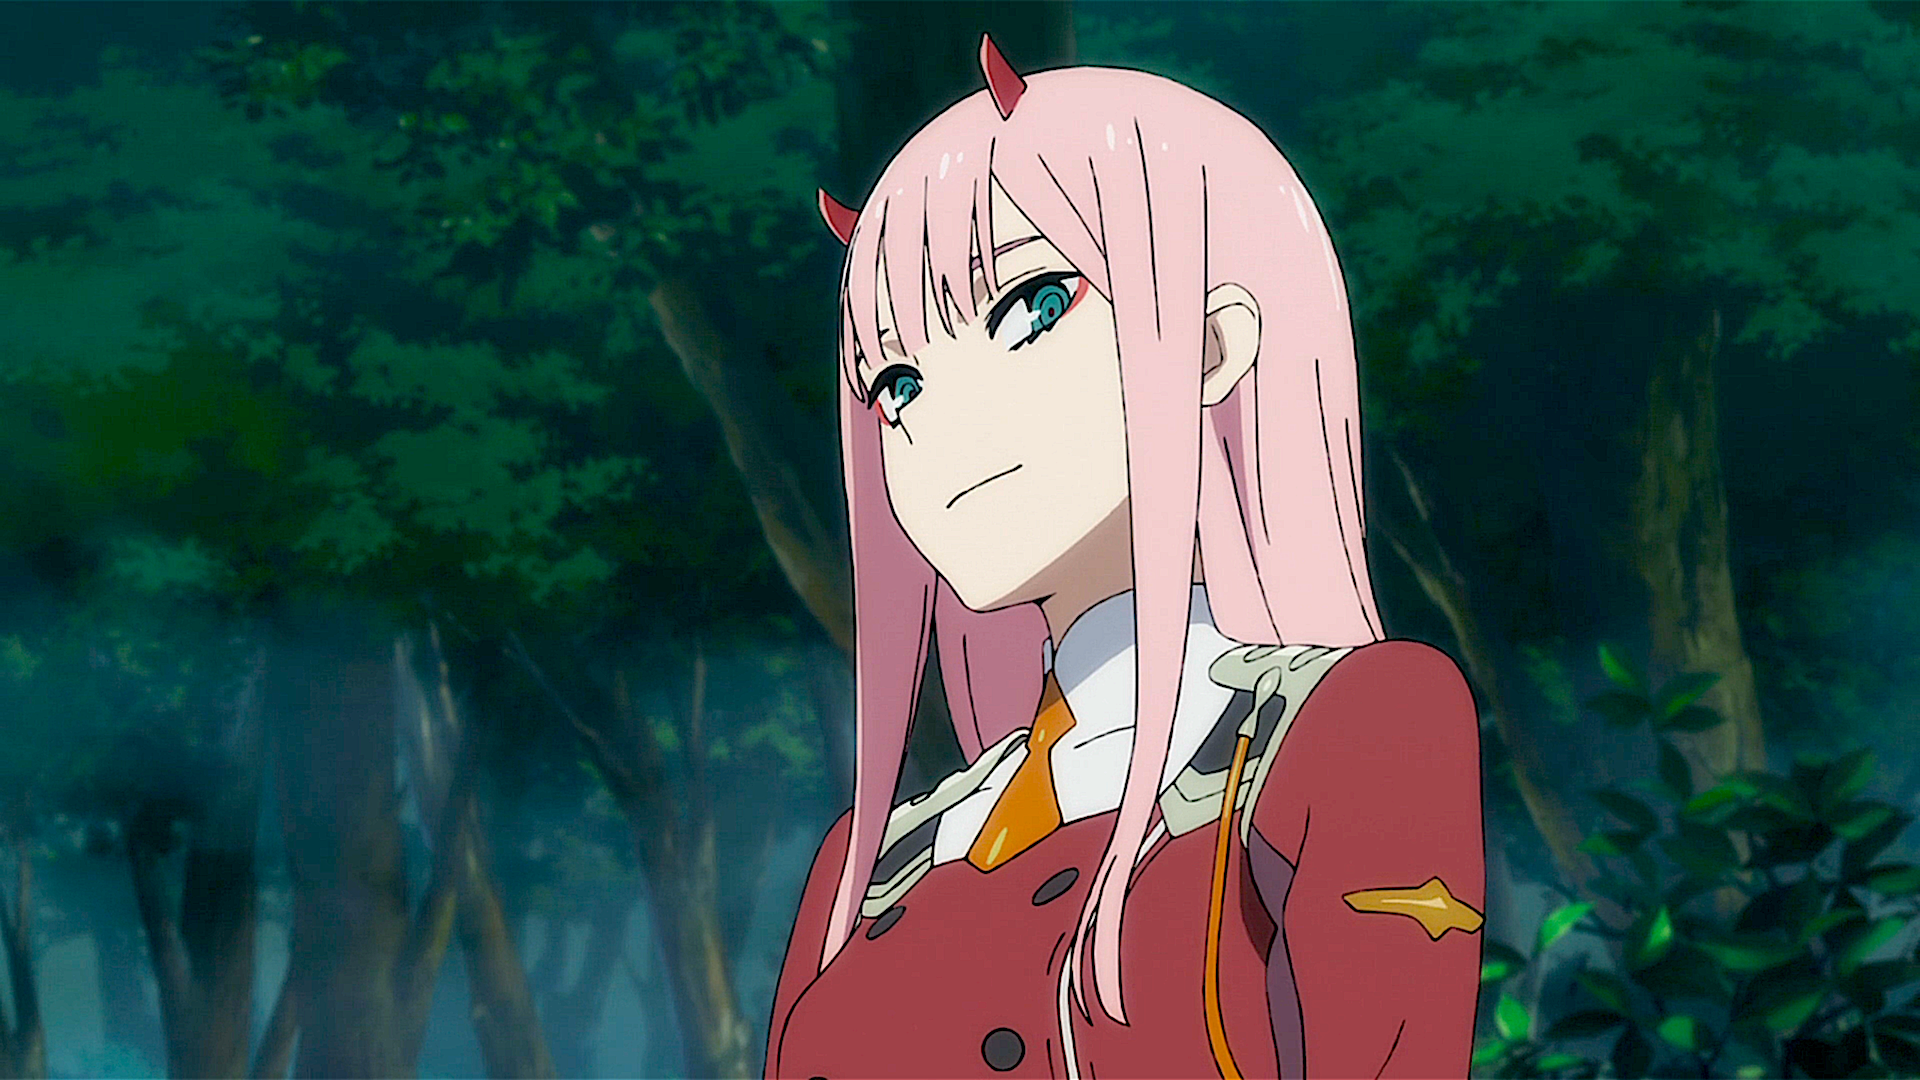 Zero Two Hd Wallpaper Background Image 1920x1080 Id 901306 Wallpaper Abyss